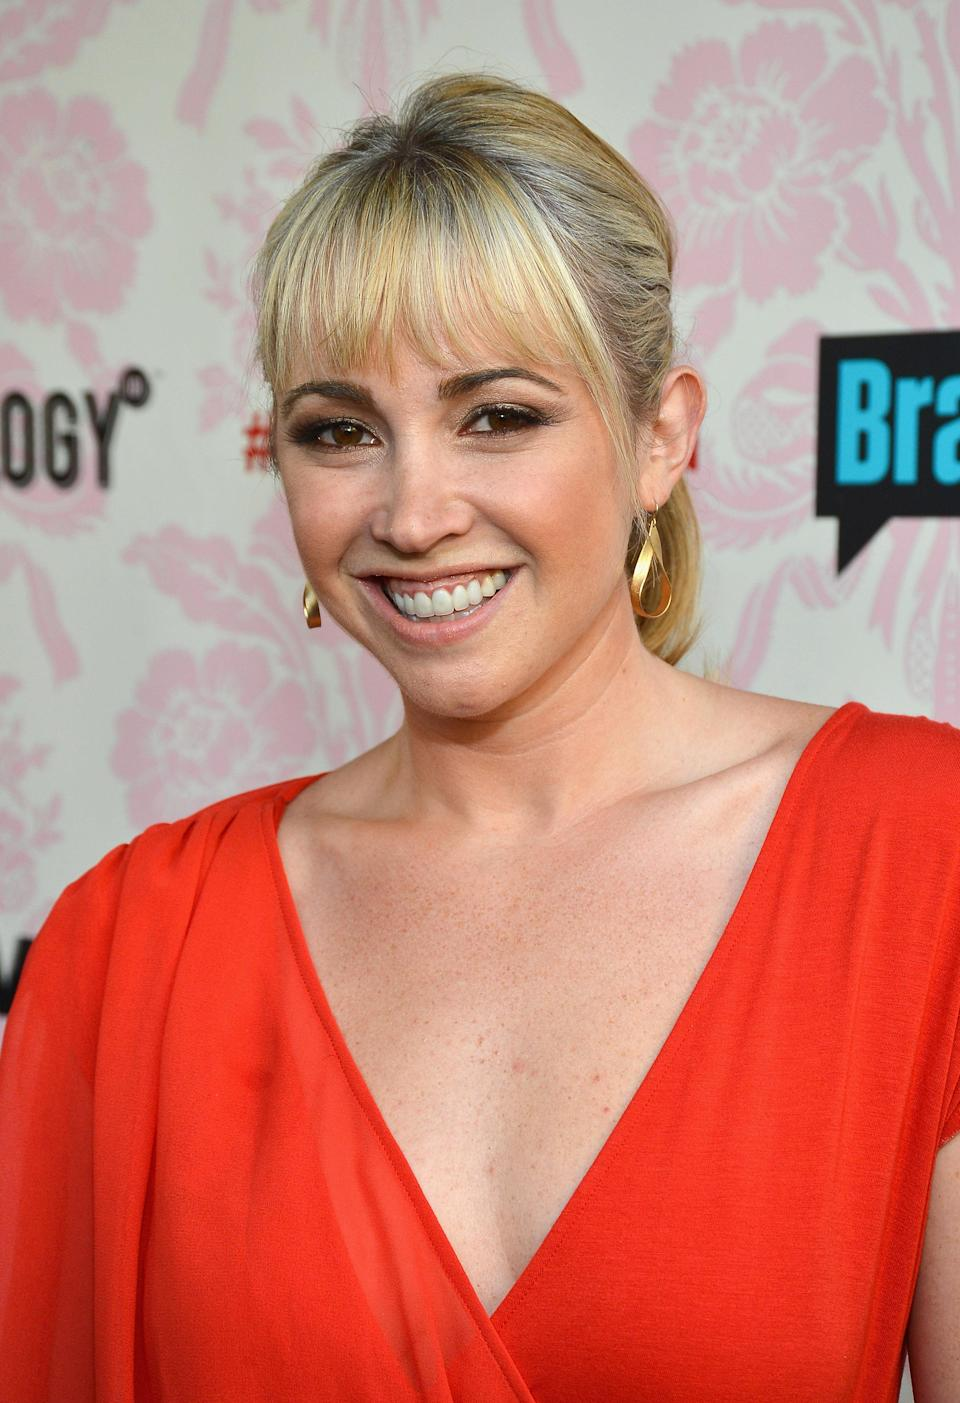 "<b>Jennifer Tisdale:</b> ""Just heard about the #theatershooting - horrific does not even begin to describe it. Thoughts & prayers are with the people of #Aurora"" (Photo by Frazer Harrison/Getty Images For Relativity Media)"